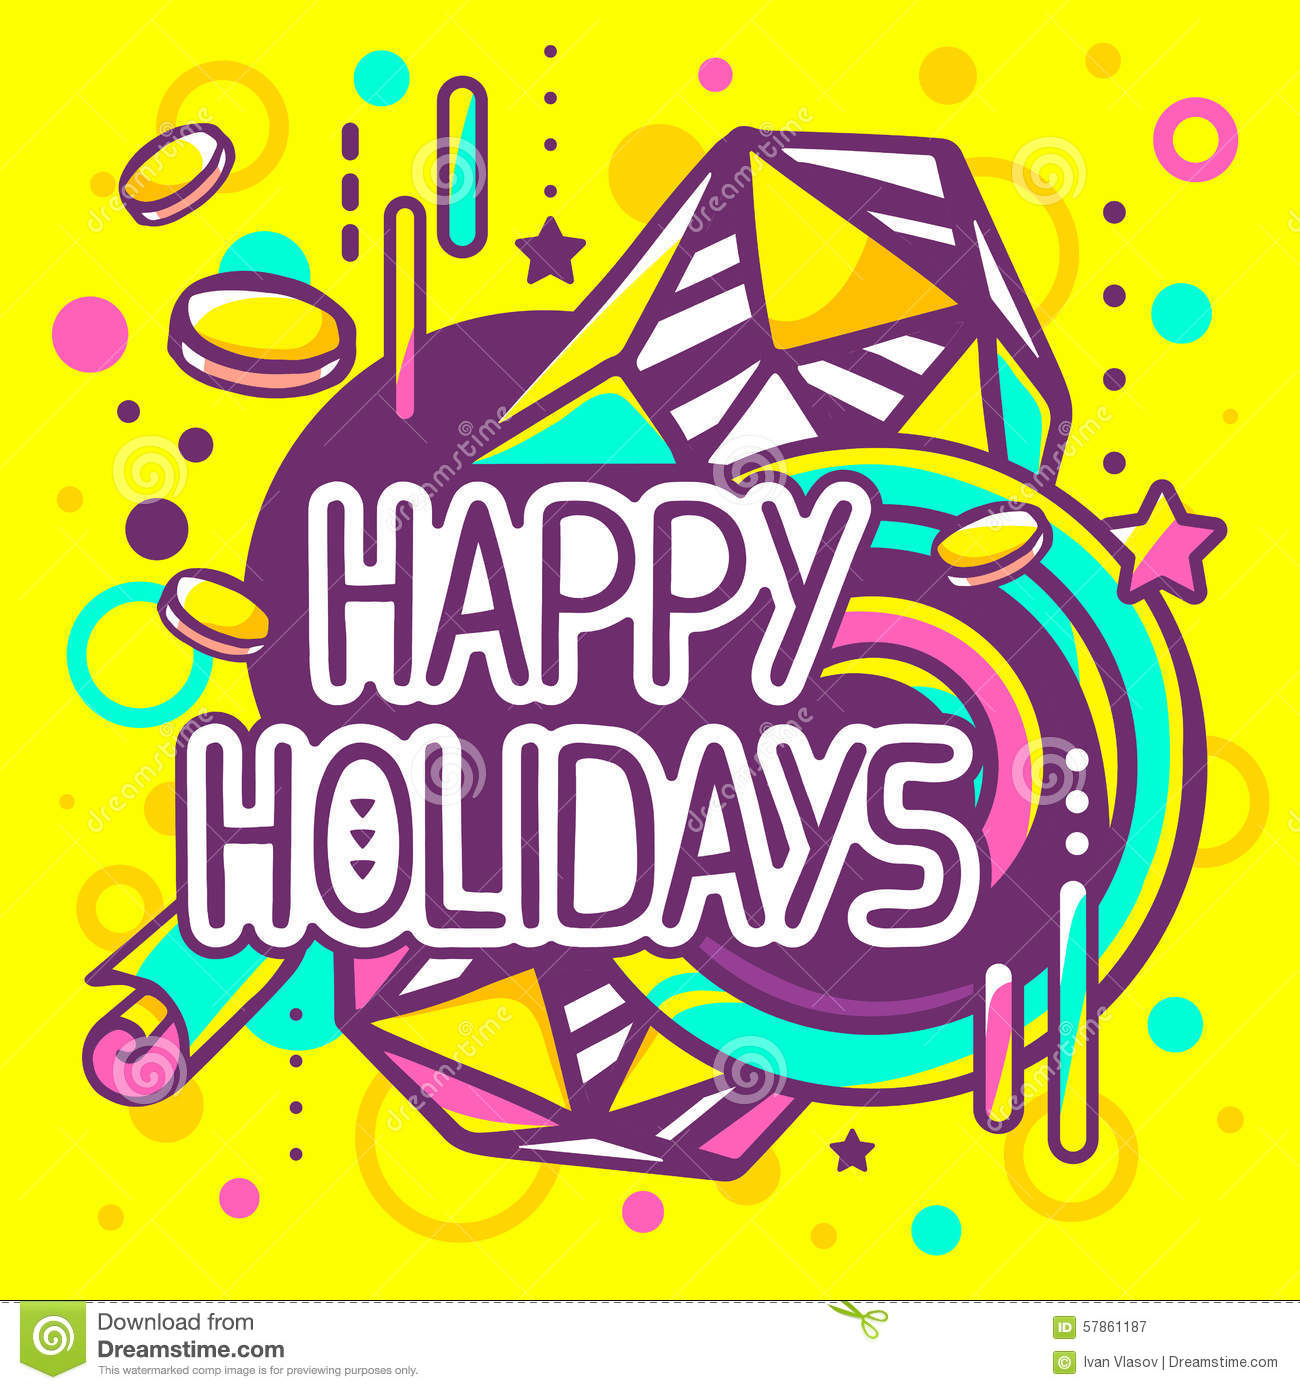 Happy Holidays Inspiration: Vector Illustration Of Colorful Happy Holidays Quote Stock